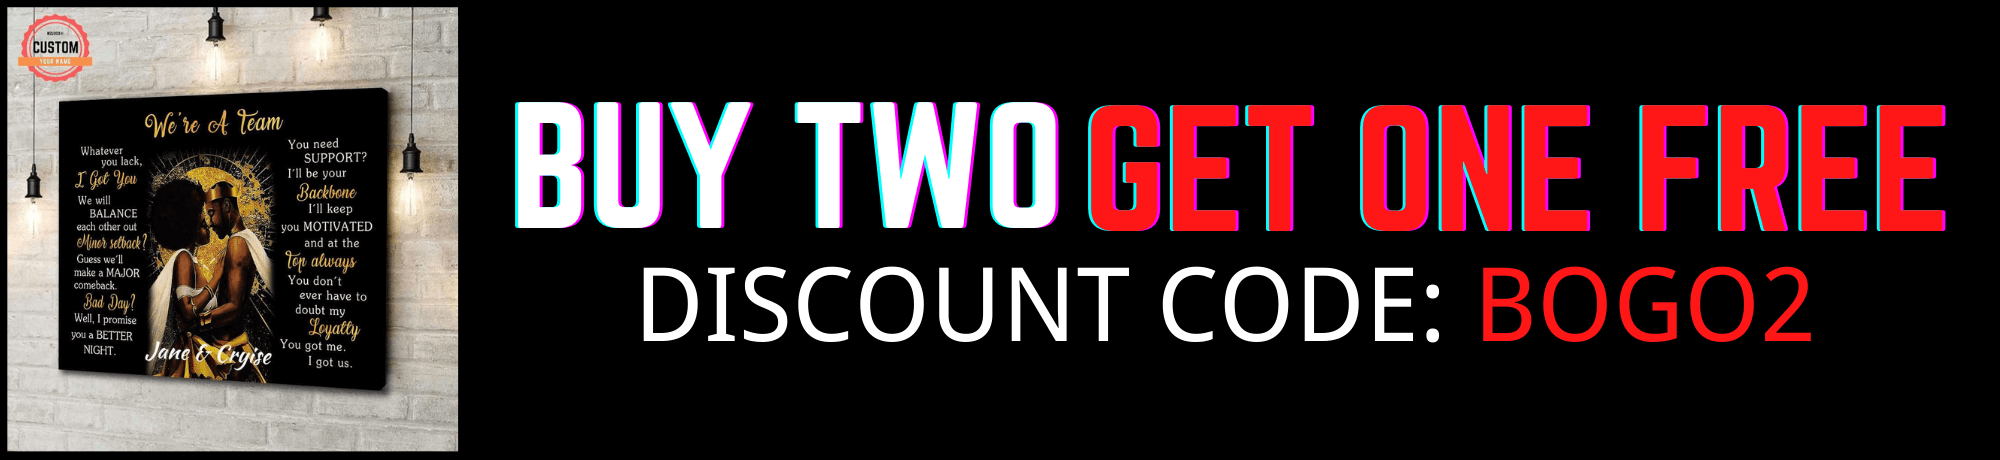 buy two get one free canvas